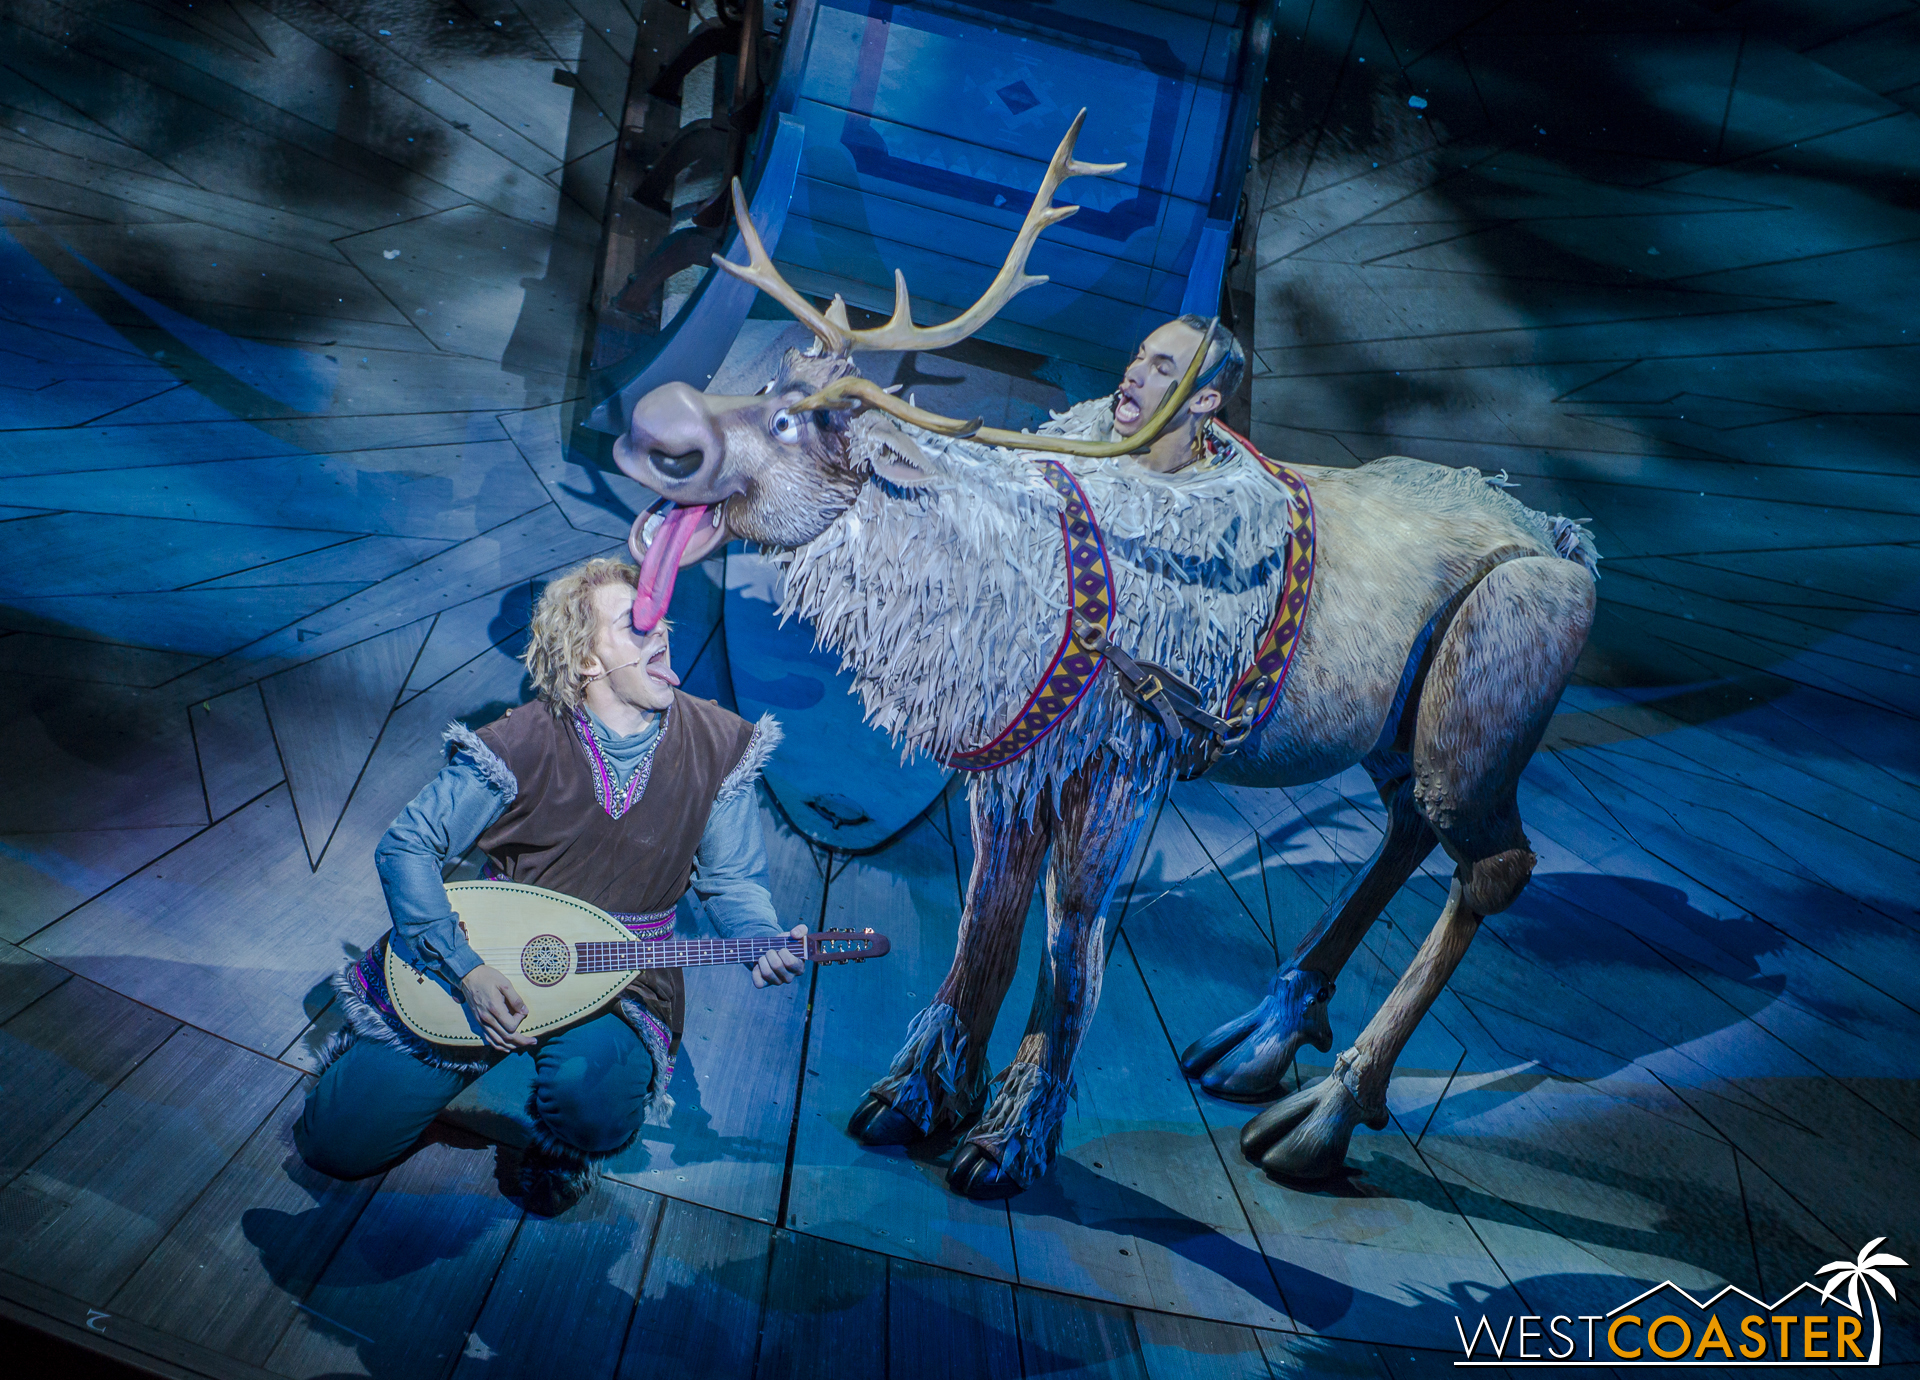 Sven uses his patented Reindeer Lick technique to wake Kristoff up.